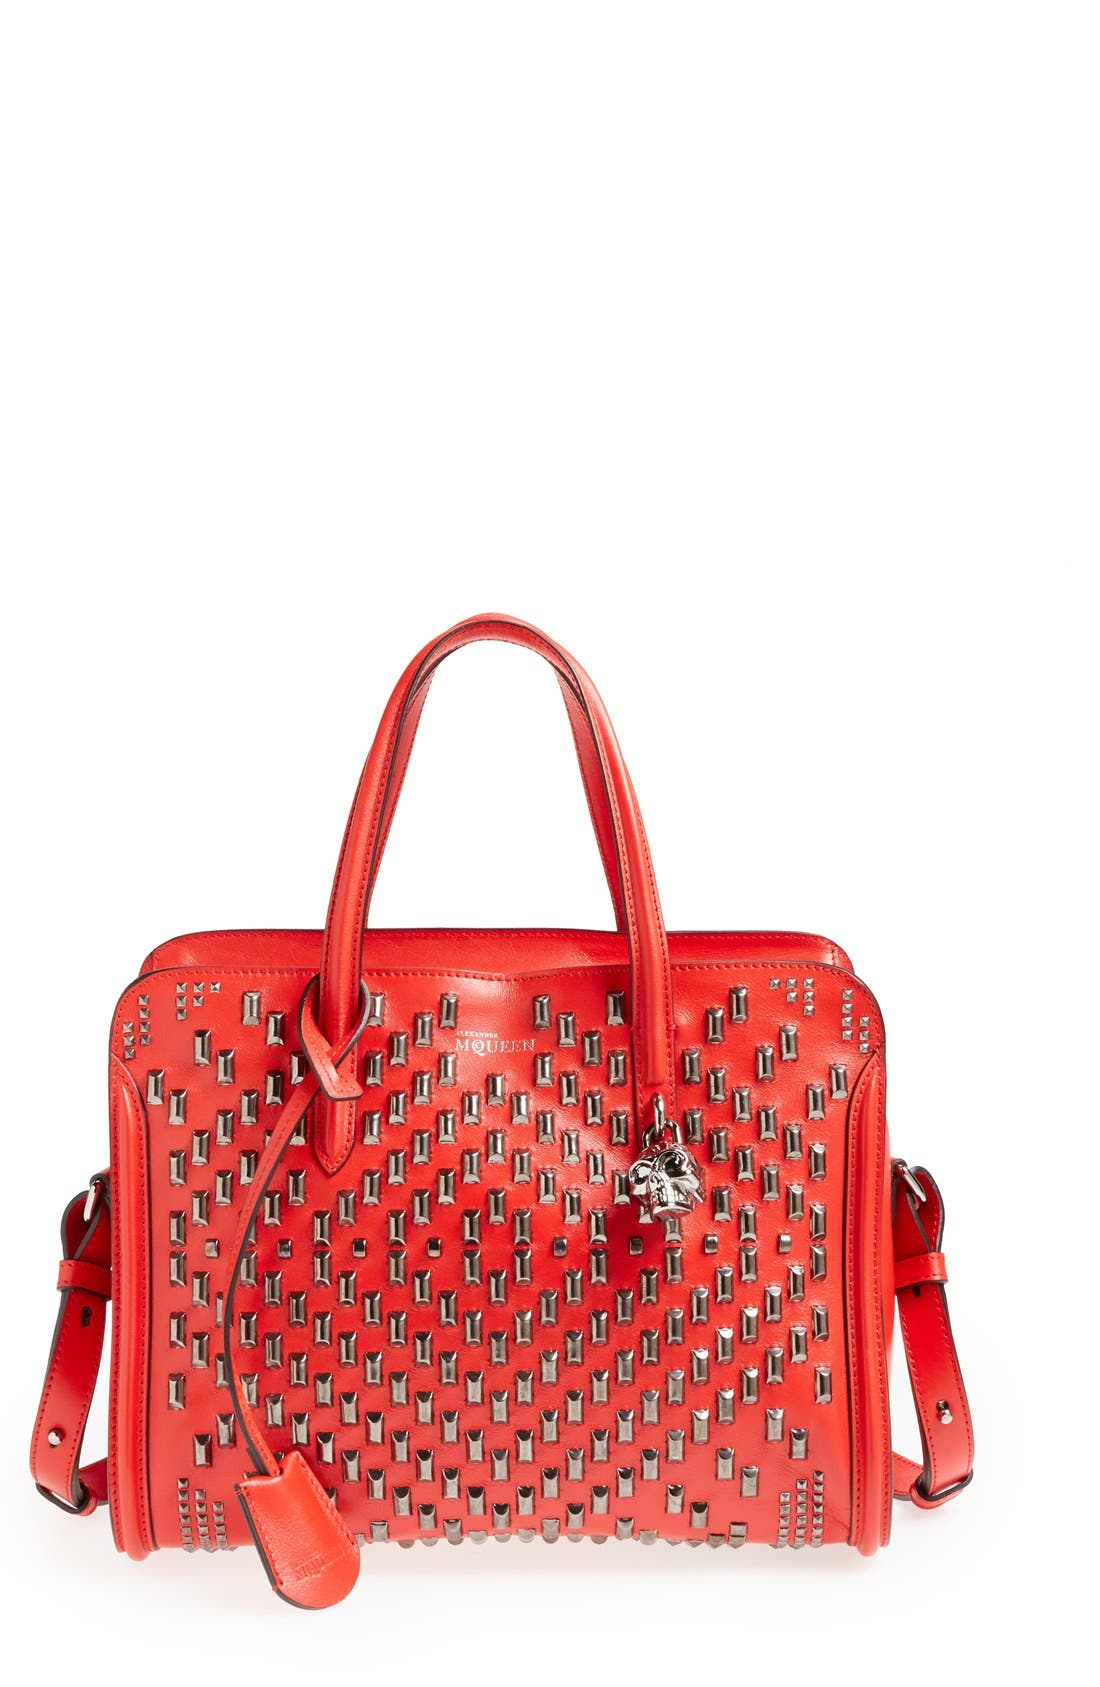 Alternate Image 1 Selected - Alexander McQueen 'Small Padlock' Studded Duffel Bag